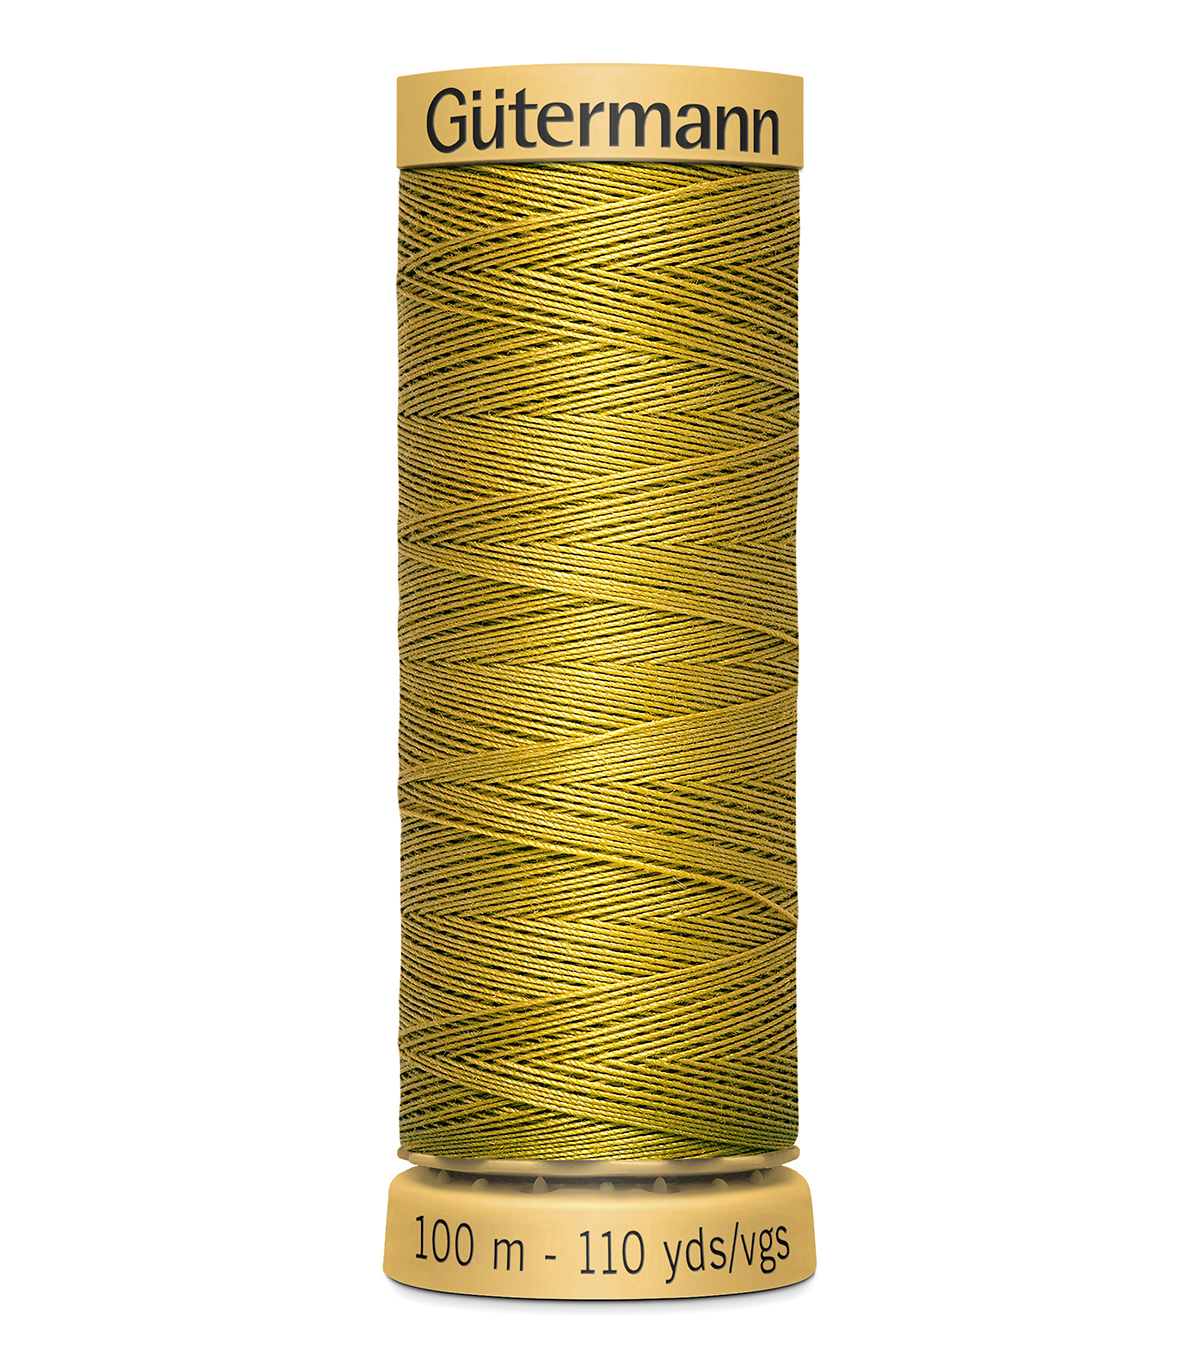 Gutermann Sew All Polyester Thread 110 Yards-Oranges & Yellows , Gold